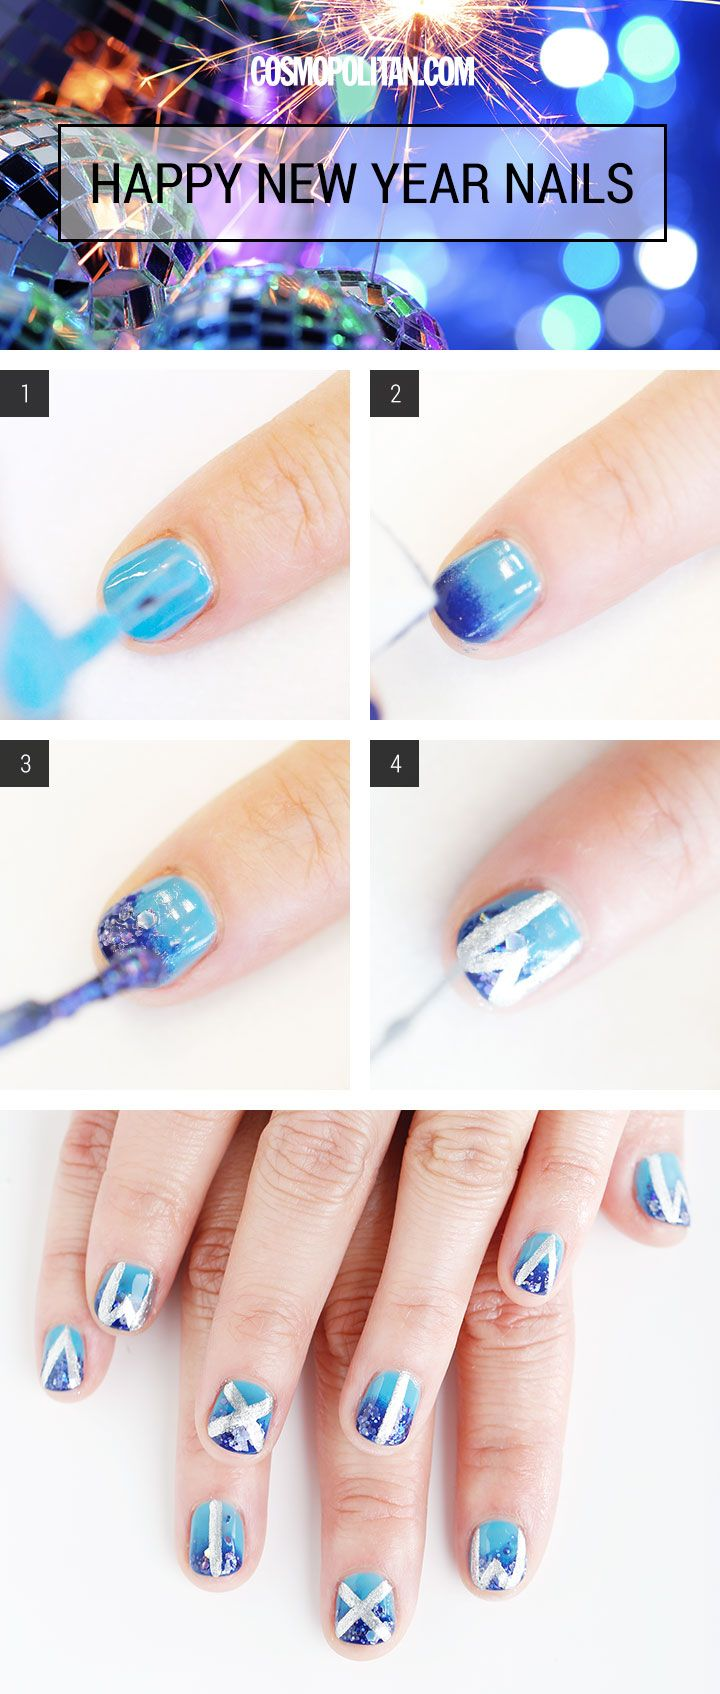 25+ Best Ideas About New Year's Nails On Pinterest